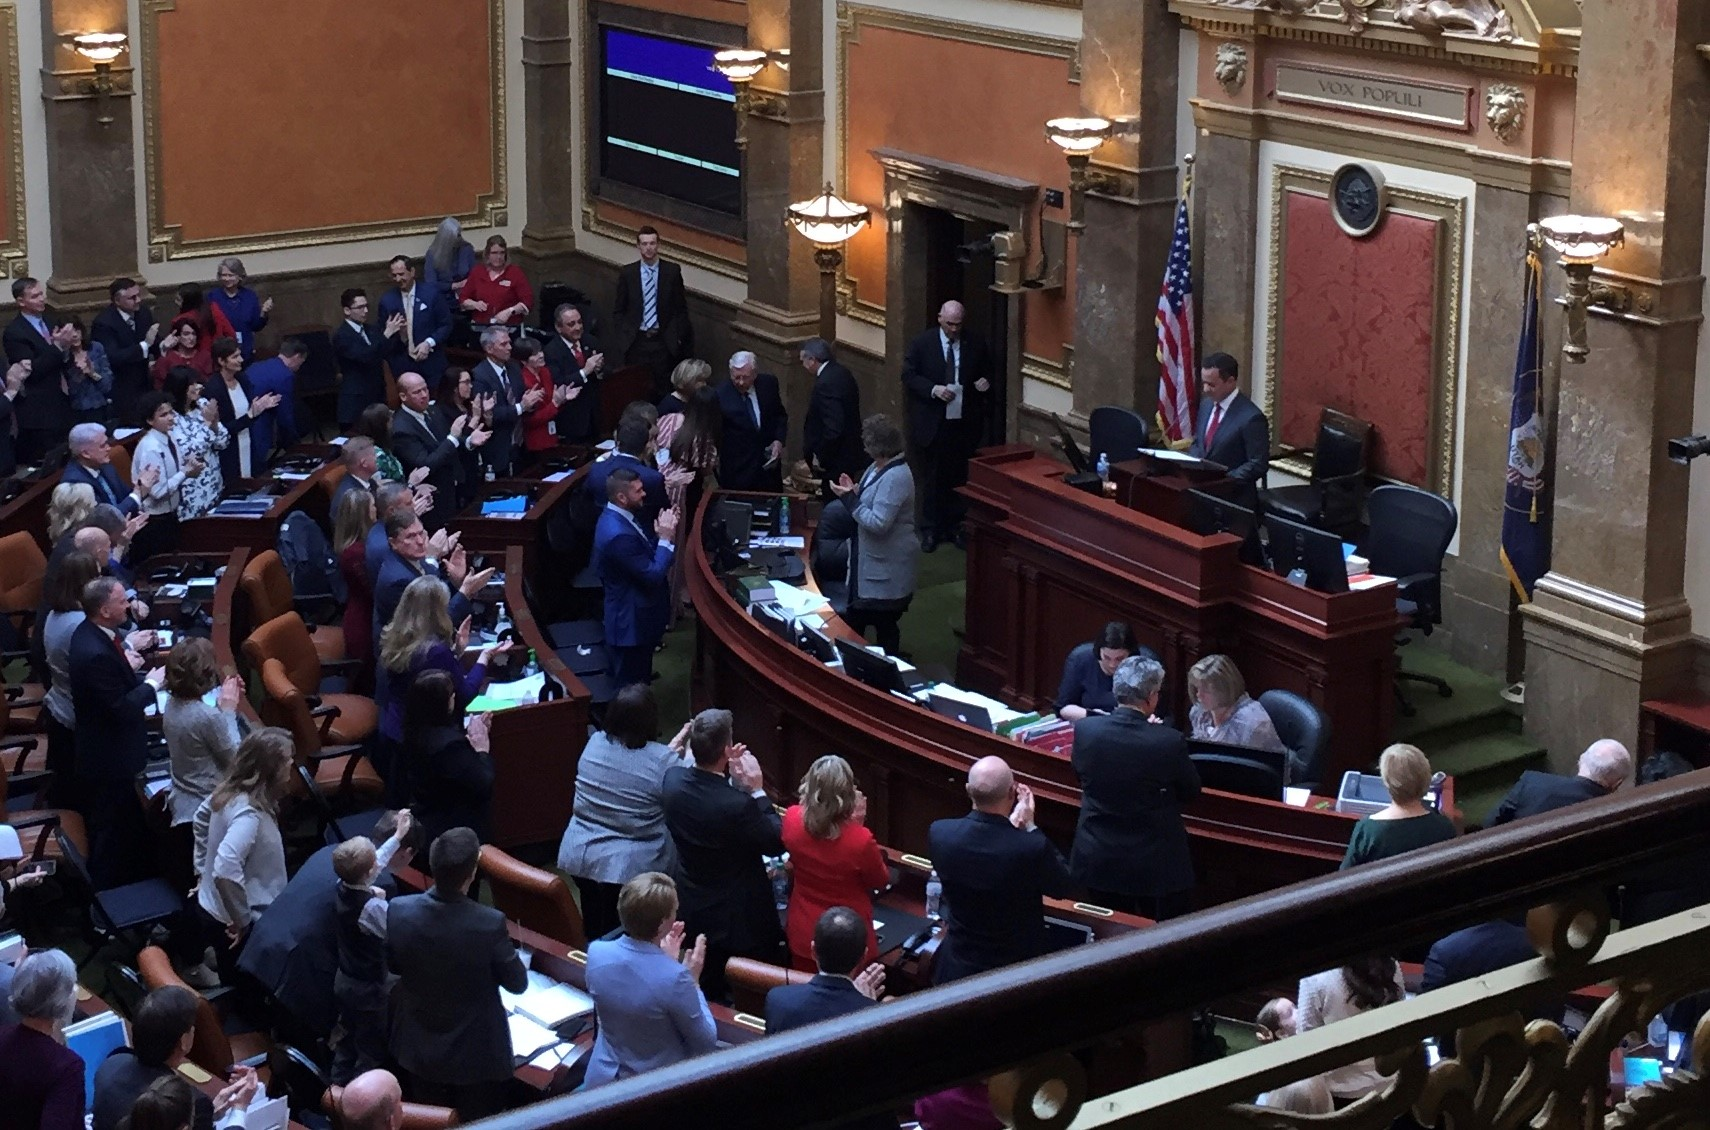 The Utah House of Representatives, as seen on Monday, Jan. 28, 2019, the start of the 2019 legislative session. President M. Russell Ballard, Acting President of the Quorum of the Twelve Apostles, who can be seen at the end of the front row in front of the rostrum, offered the innovation in the House; Elder Jack N. Gerard, a General Authority Seventy, in the Utah Senate on the same day.